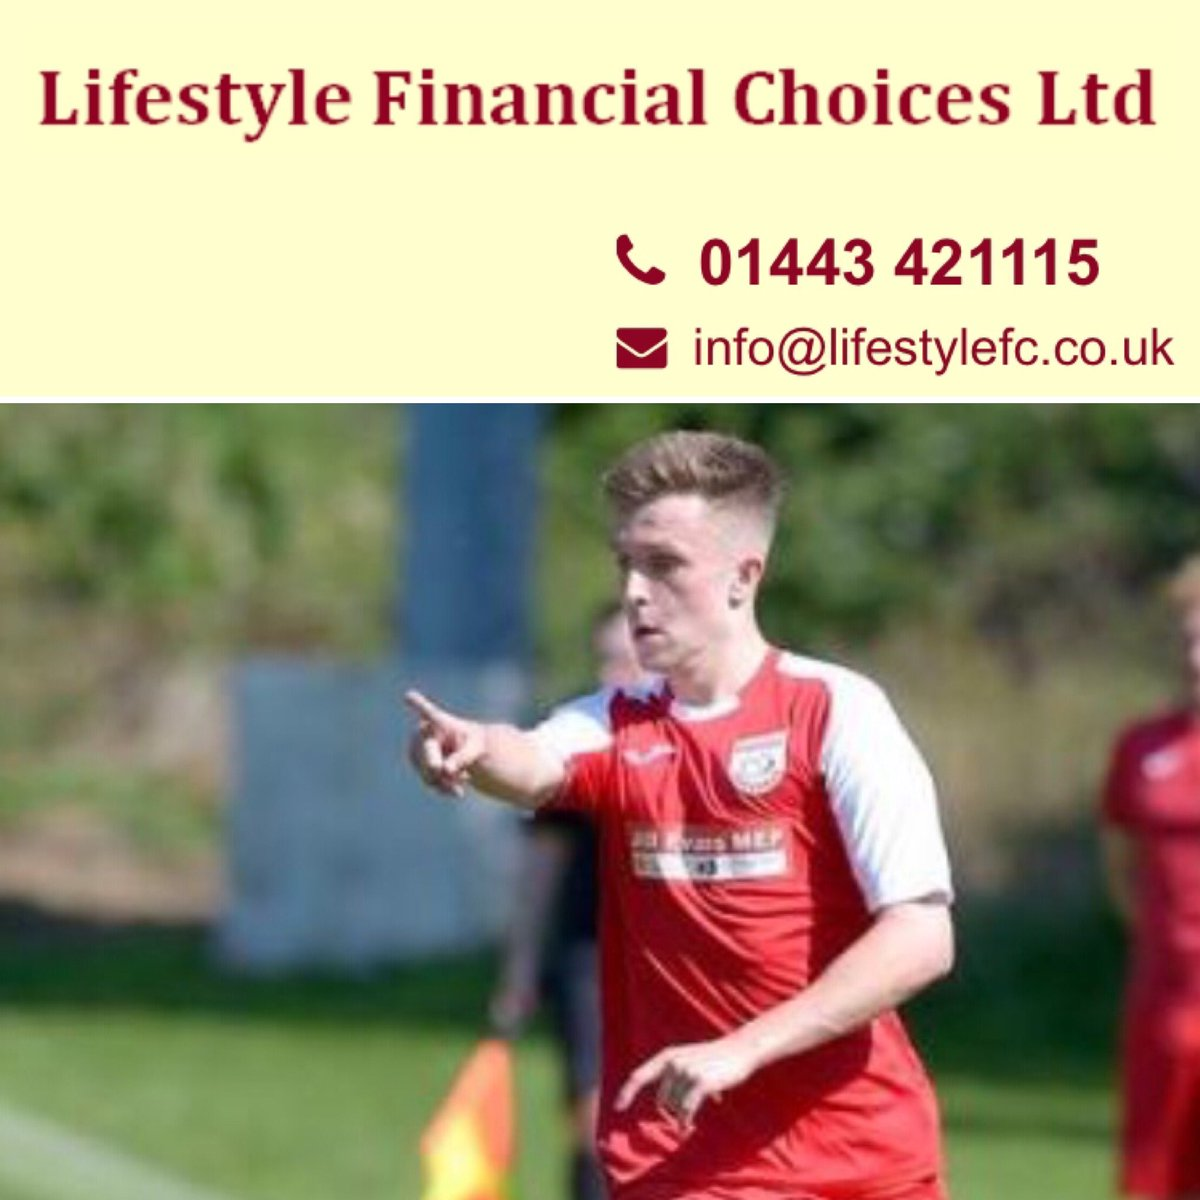 A massive thank you to lifestyle financial choices for sponsoring Lee Price for the upcoming season. Check out their website https://t.co/dqhIGQOhLR. Please support your local business. #localbusiness #community #bulldogs https://t.co/S4fN2gaLDt